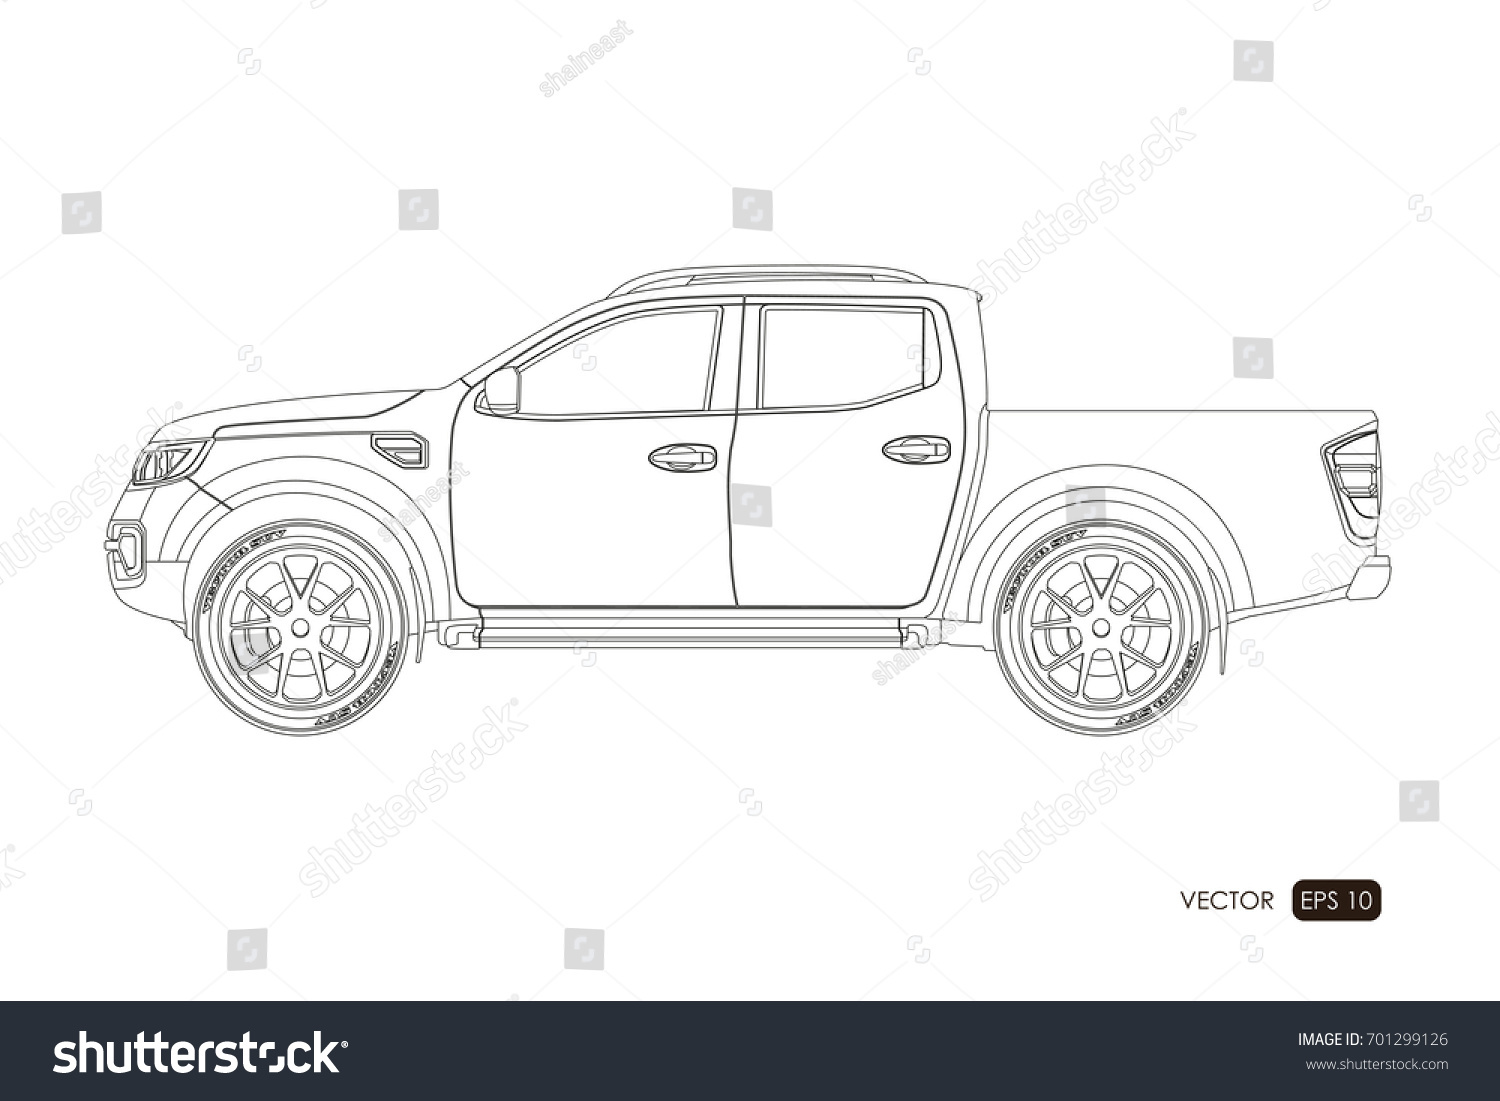 Blueprint suv contour drawing car on stock vector 701299126 blueprint of suv contour drawing of car on a white background side view of malvernweather Choice Image